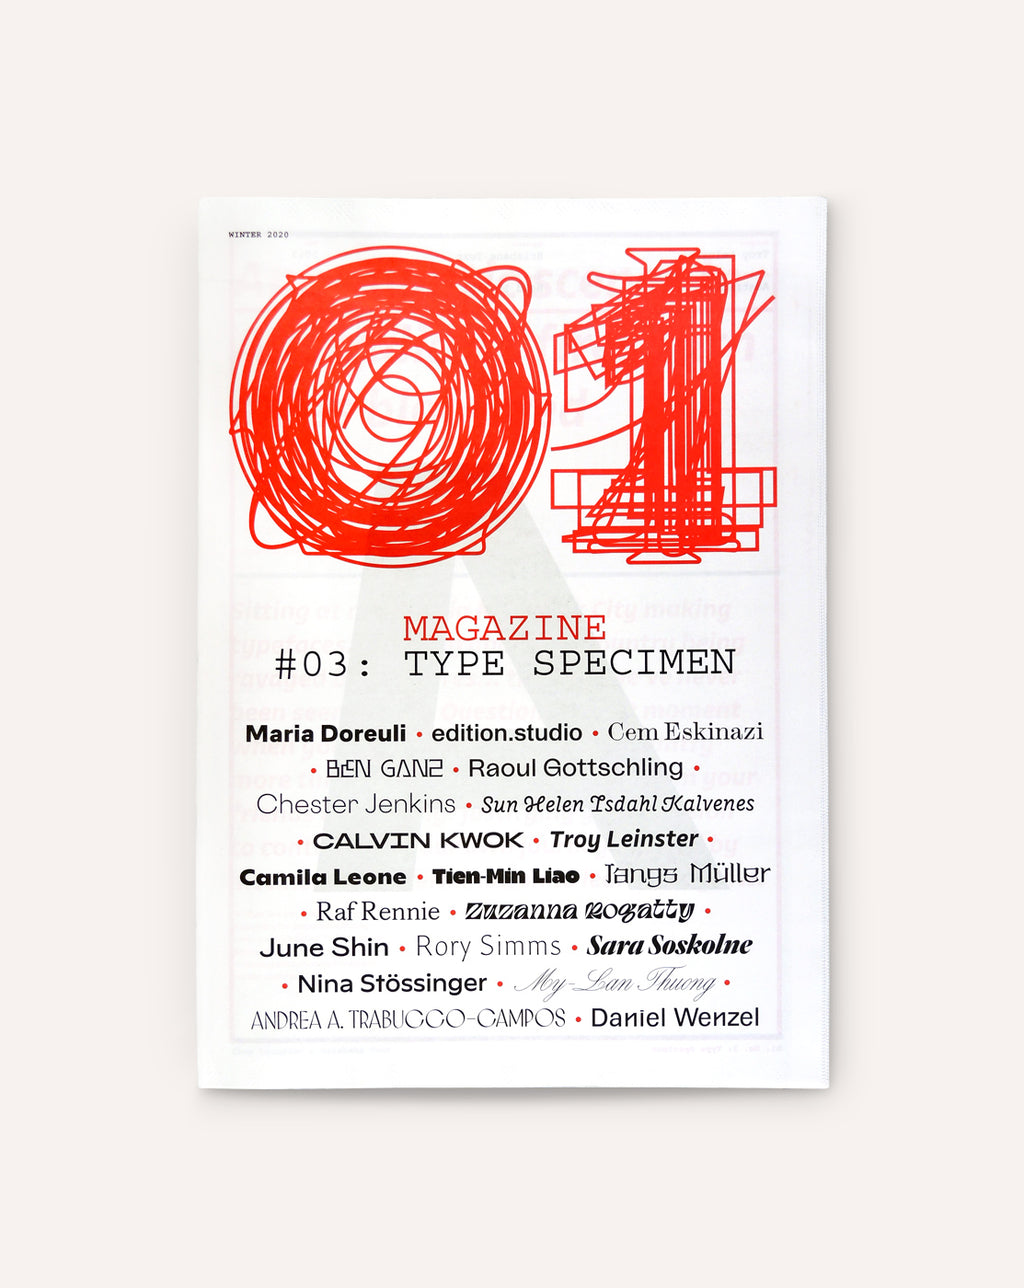 O1 Magazine, No. 03: Type Specimen